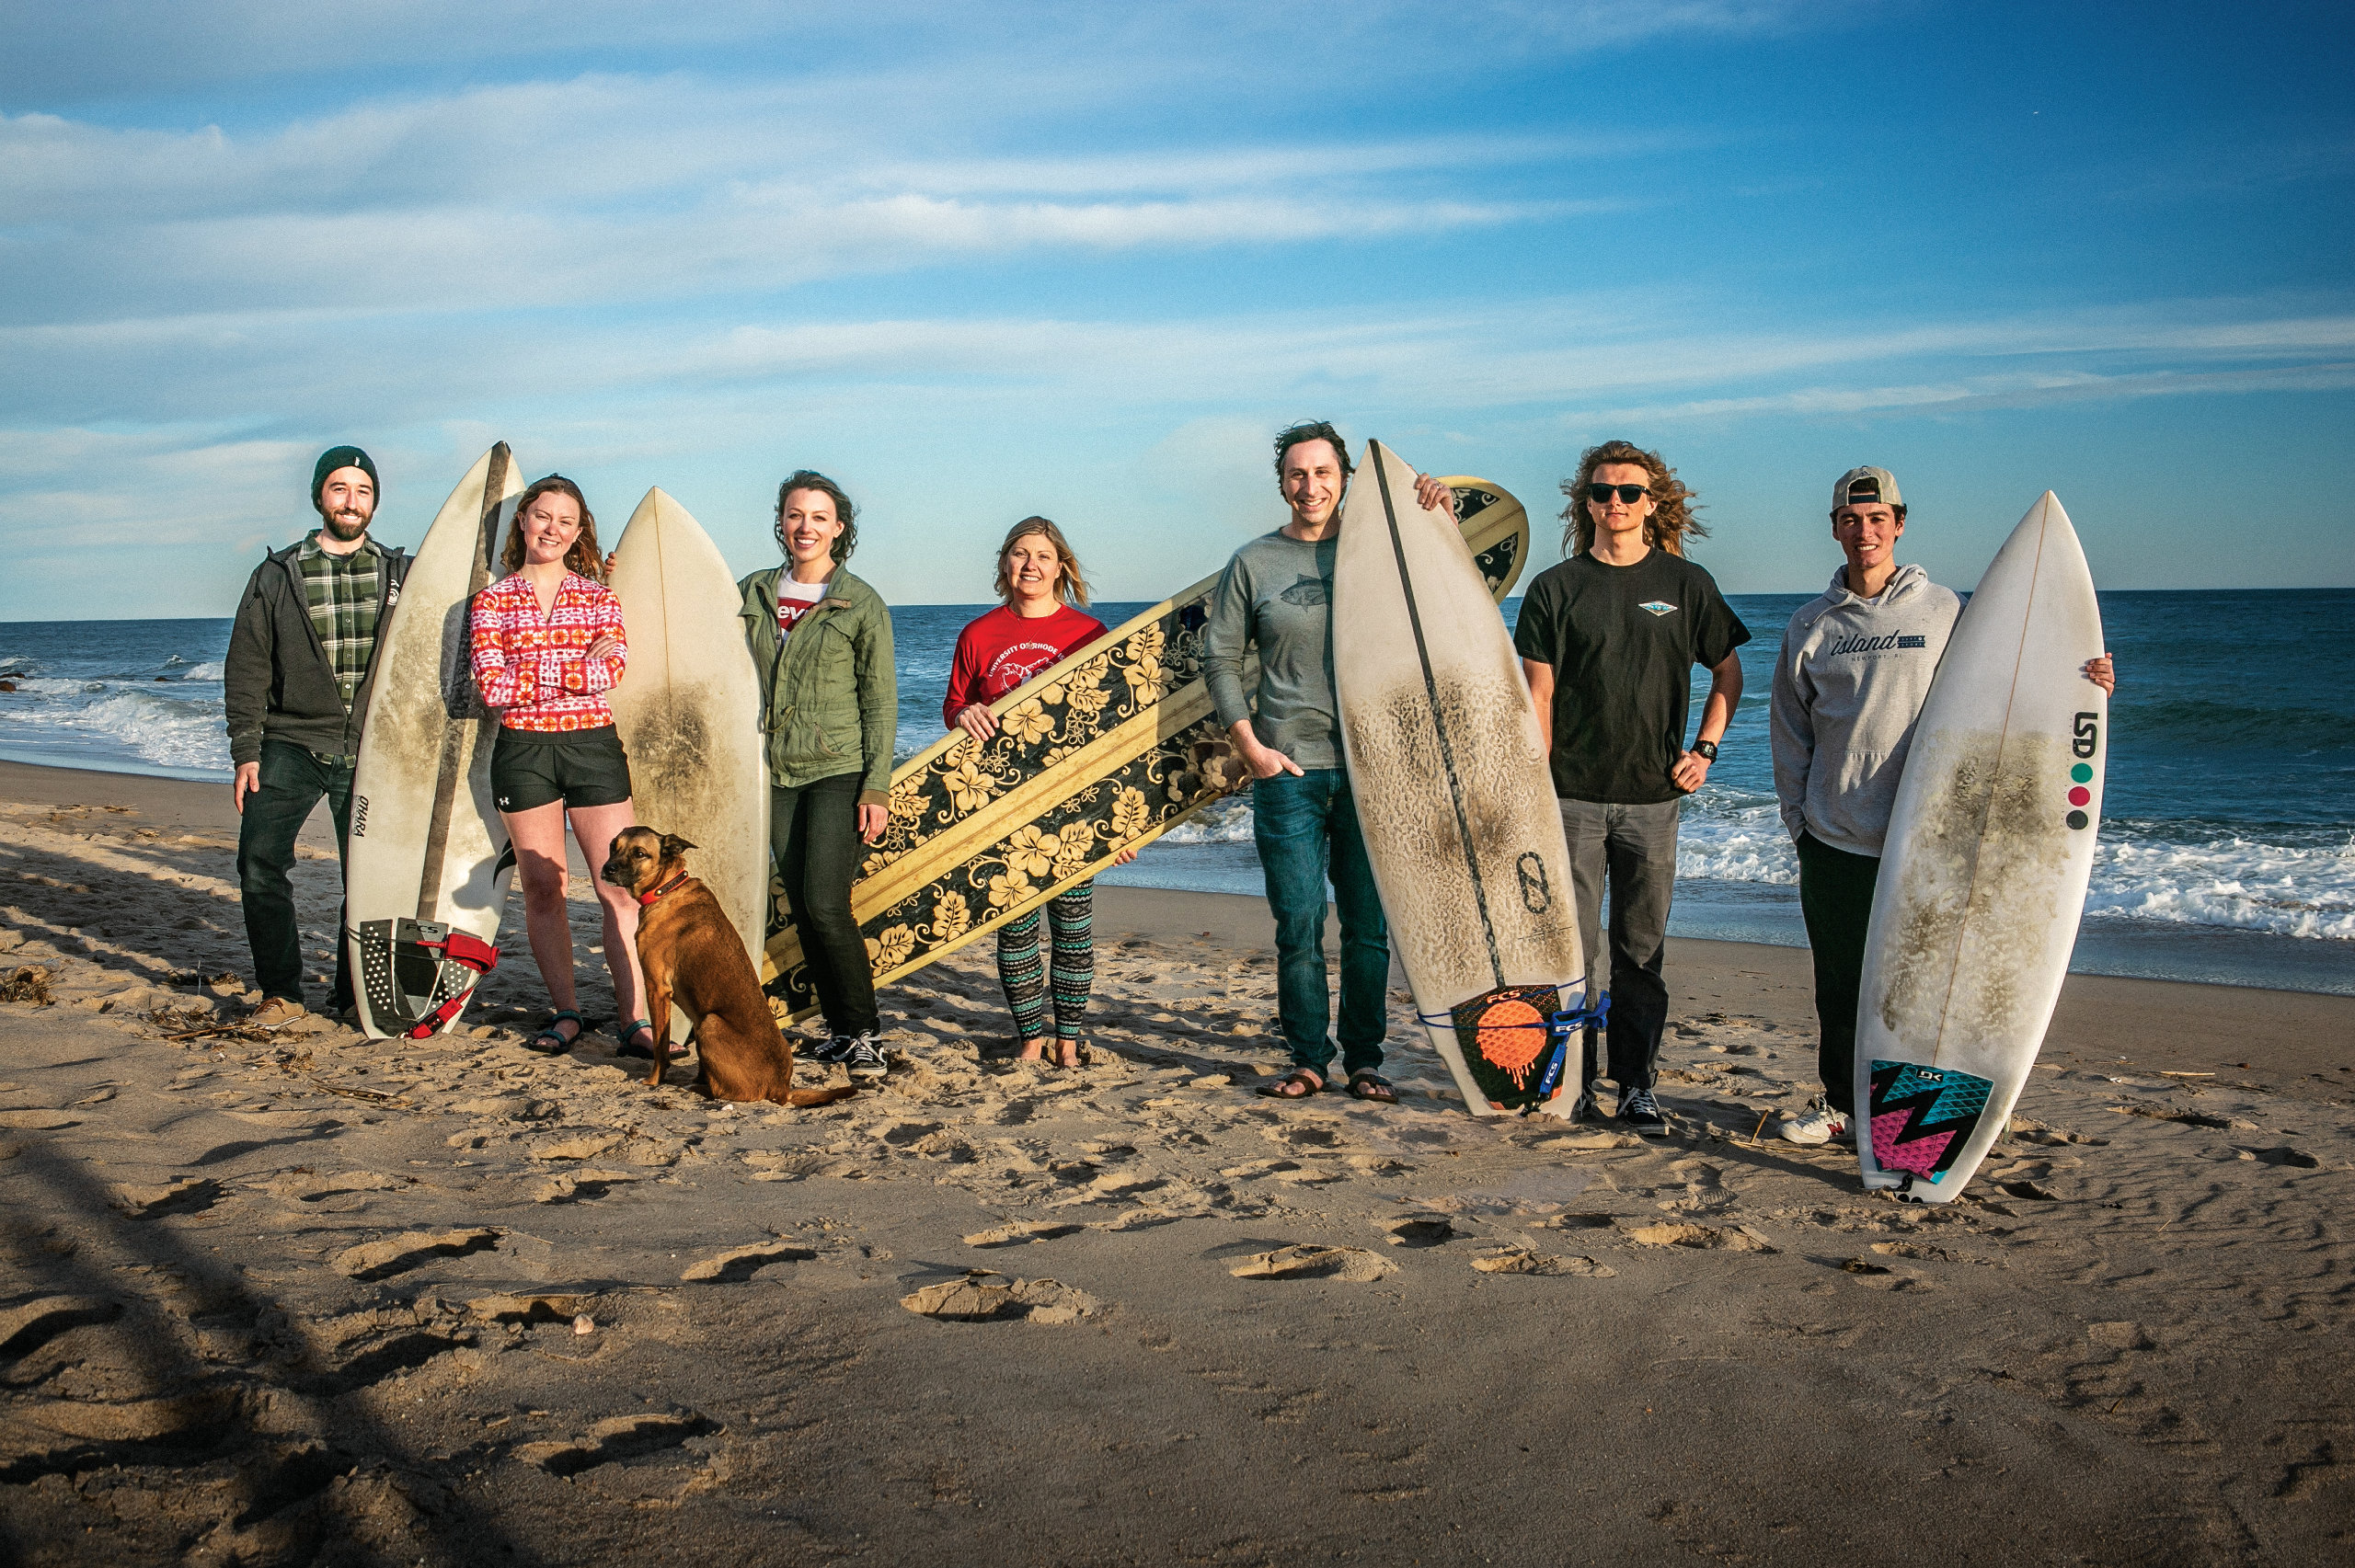 URI faculty and students stand with their surfboards on the beach